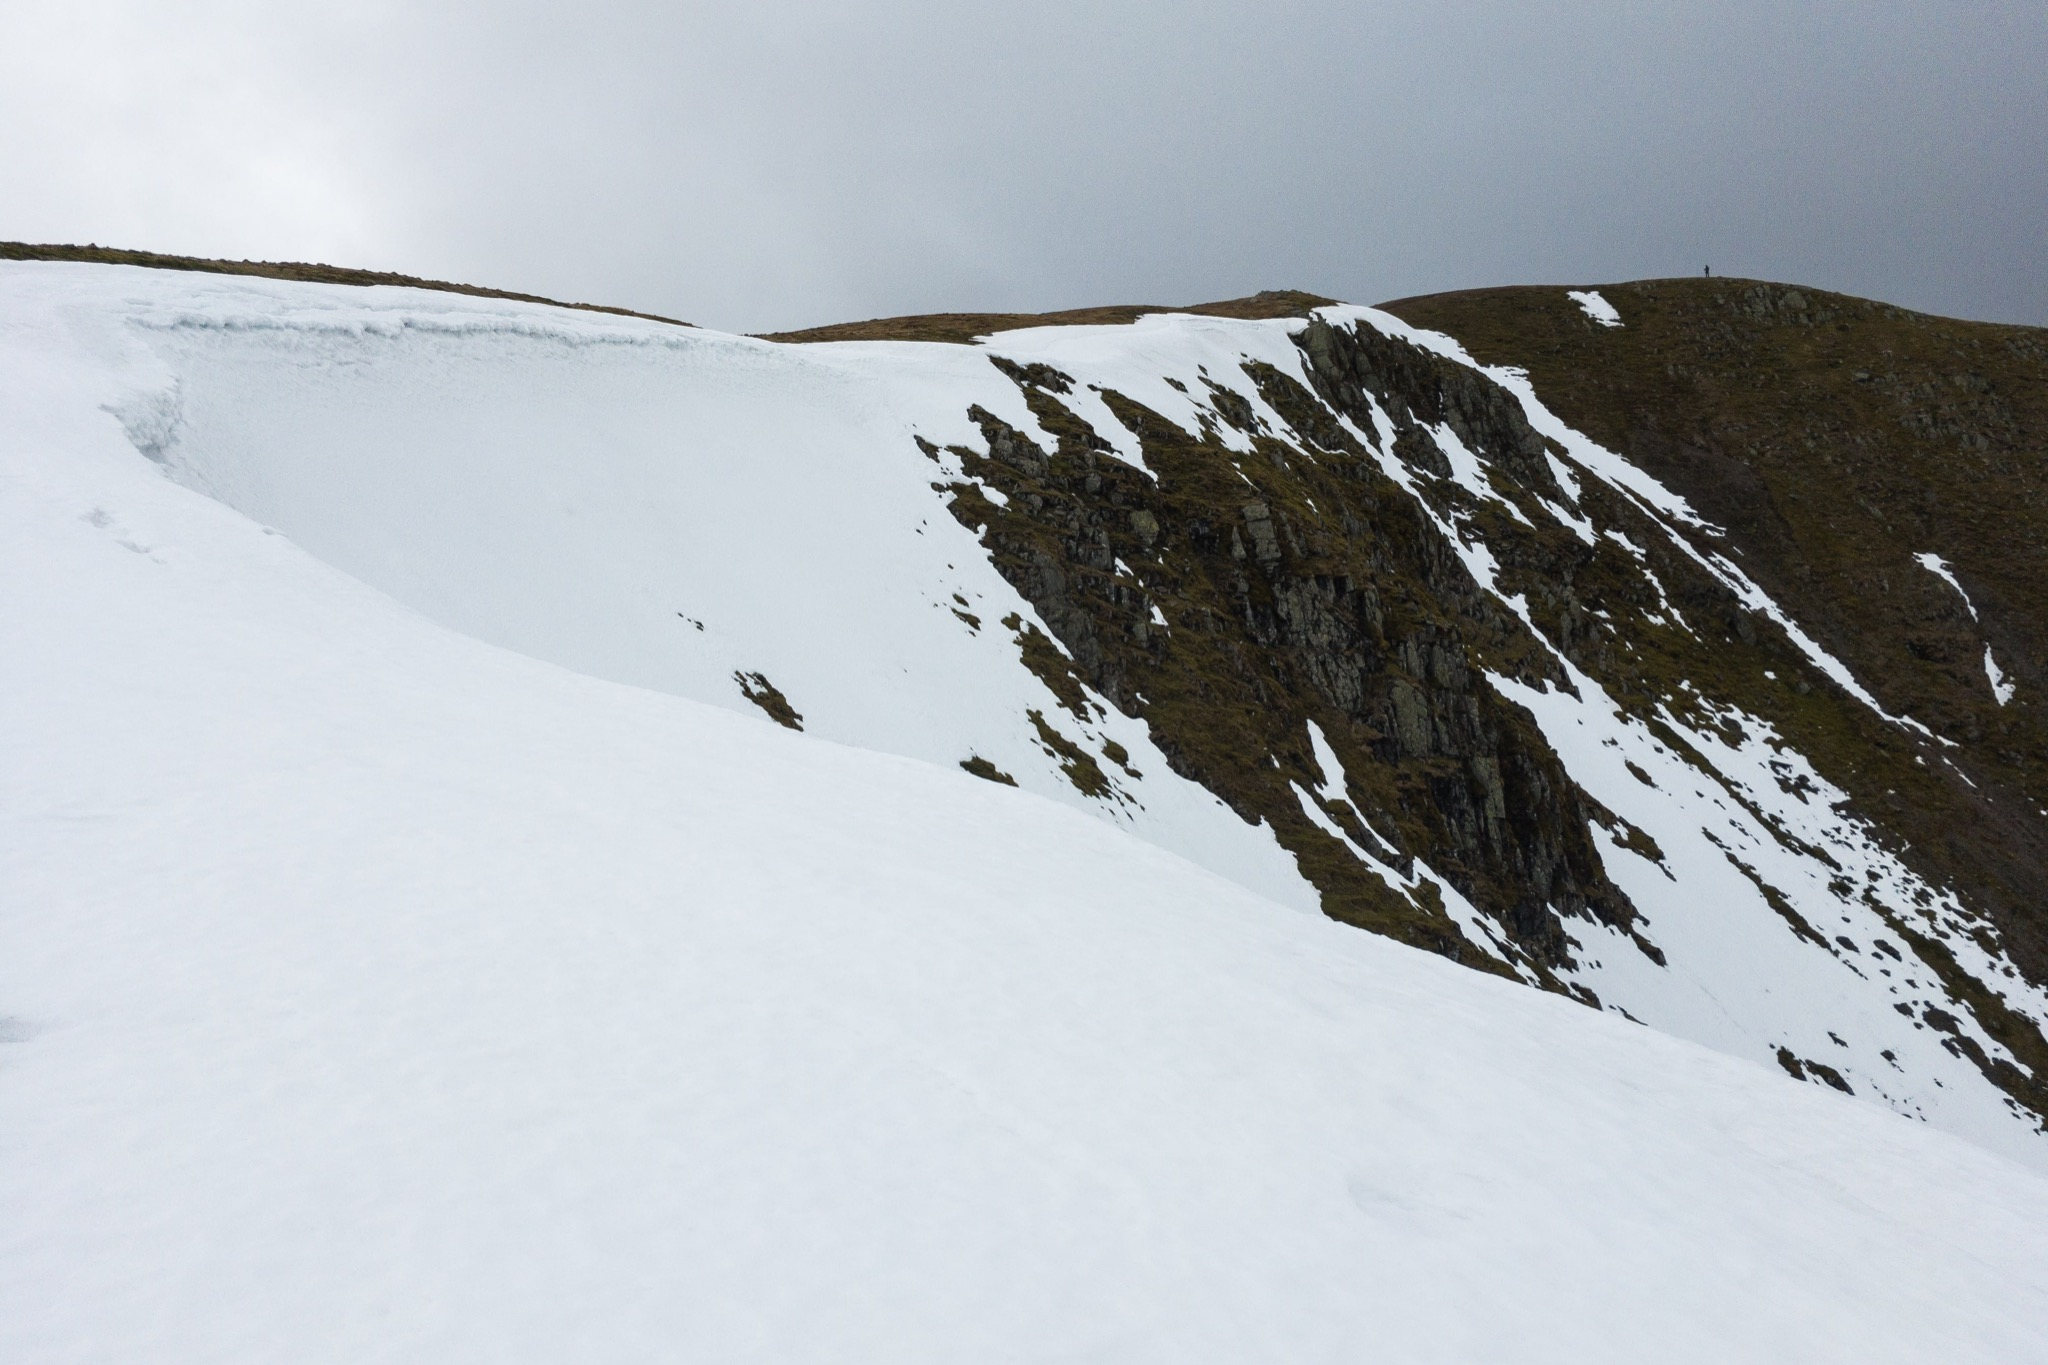 On Nethermost Pike, winter was a bit more assertive, but still in gradual retreat